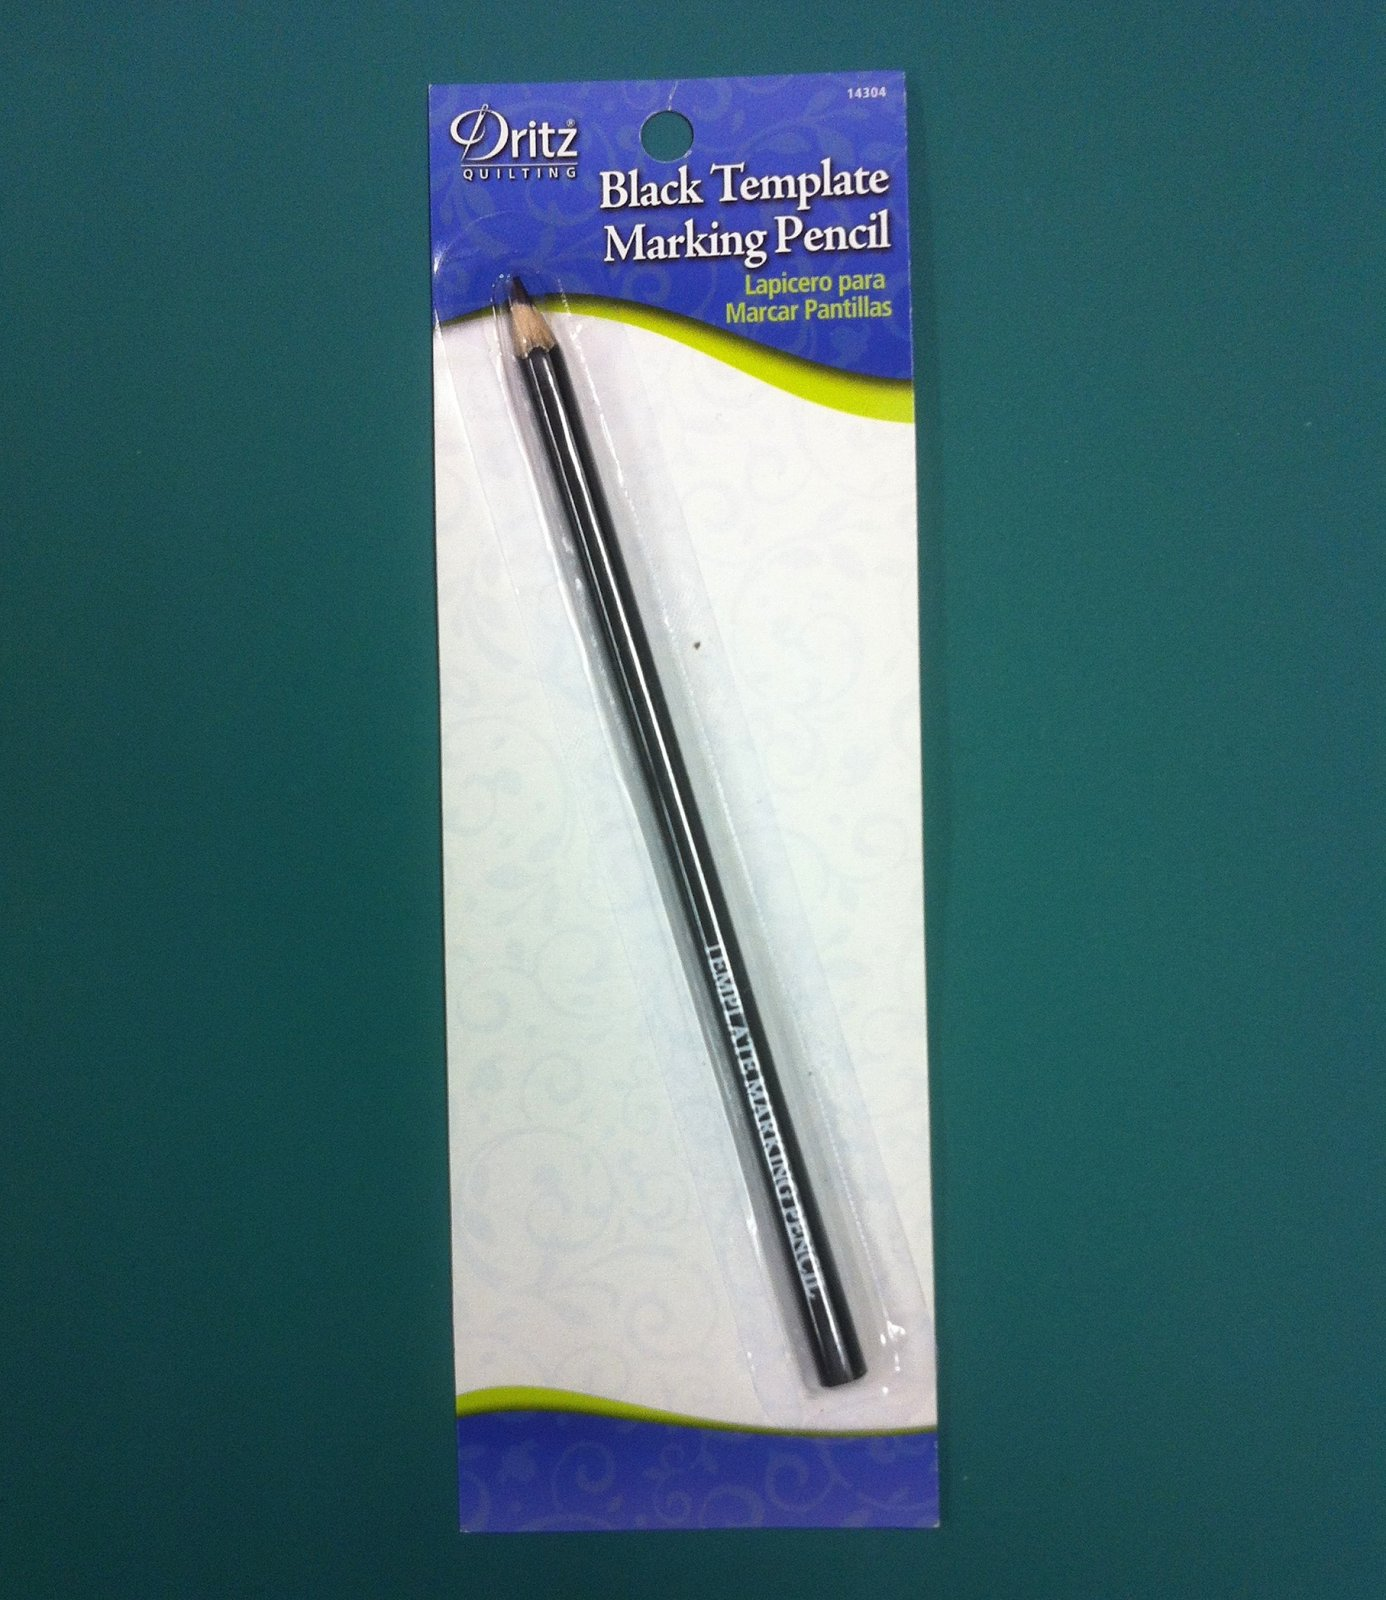 Black Template Marking Pencil